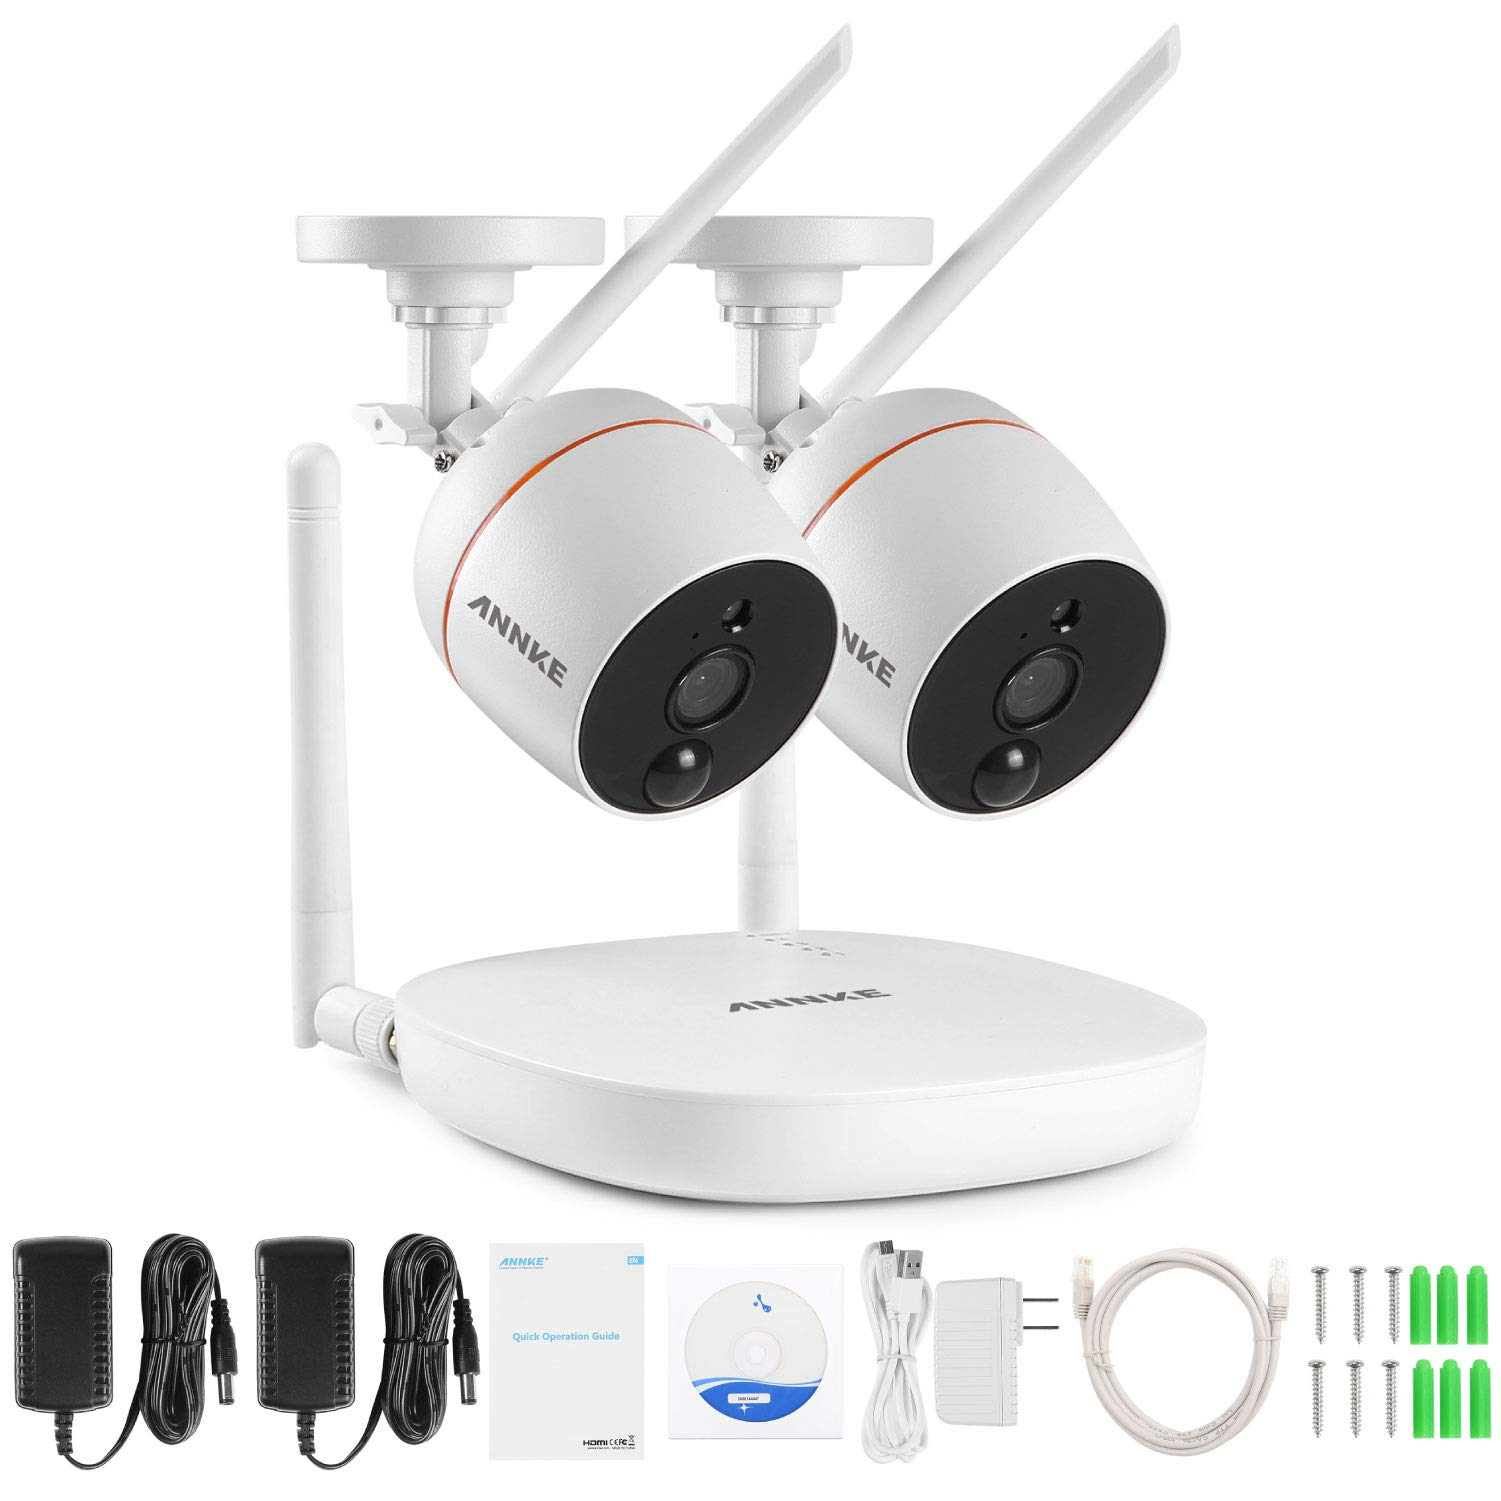 ANNKE Wireless Security Camera System, 4CH 1080P Mini NVR with 2pcs 2.0MP WiFi Outdoor Surveillance Cameras, 2-Way Audio, PIR Motion Detection, 100ft Night Vision, APP Smart Alerts